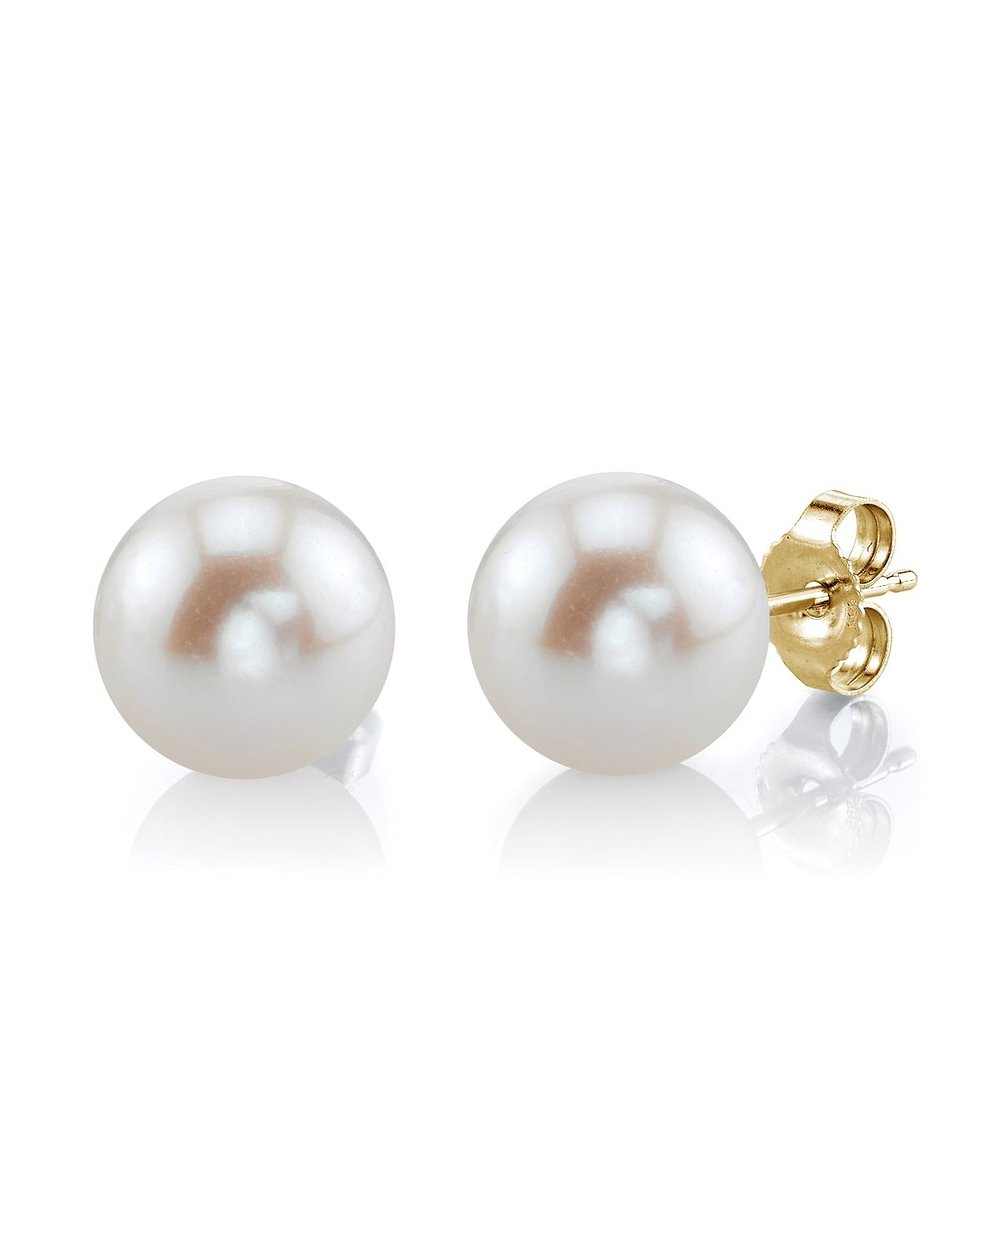 THE PEARL SOURCE 14K Gold 9-10mm AAA Quality Round White Freshwater Cultured Pearl Stud Earrings for Women